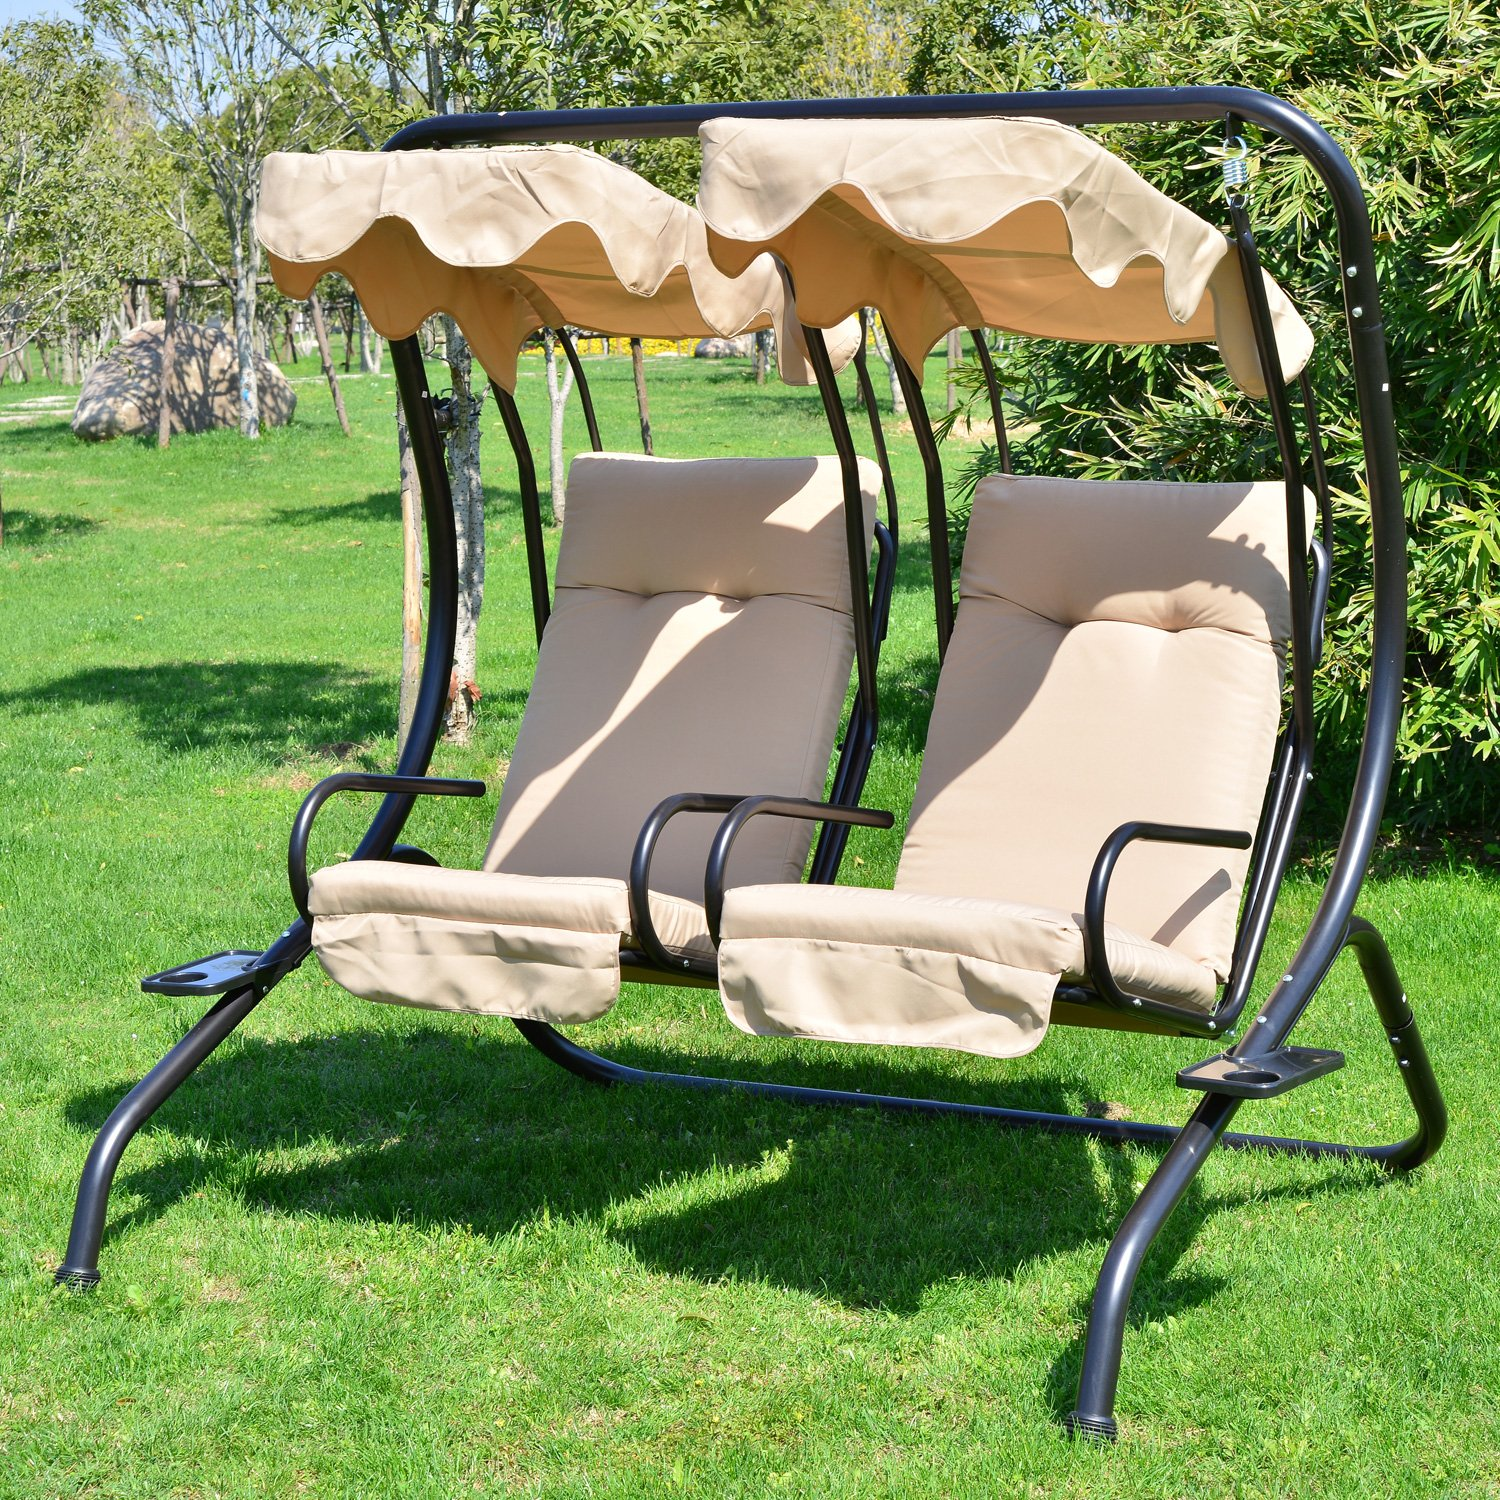 Outsunny Garden Outdoor Swing Chair 2 Seater Swinging Hammock Patio  Cushioned Seat With Tray: Amazon.co.uk: Garden U0026 Outdoors Part 56